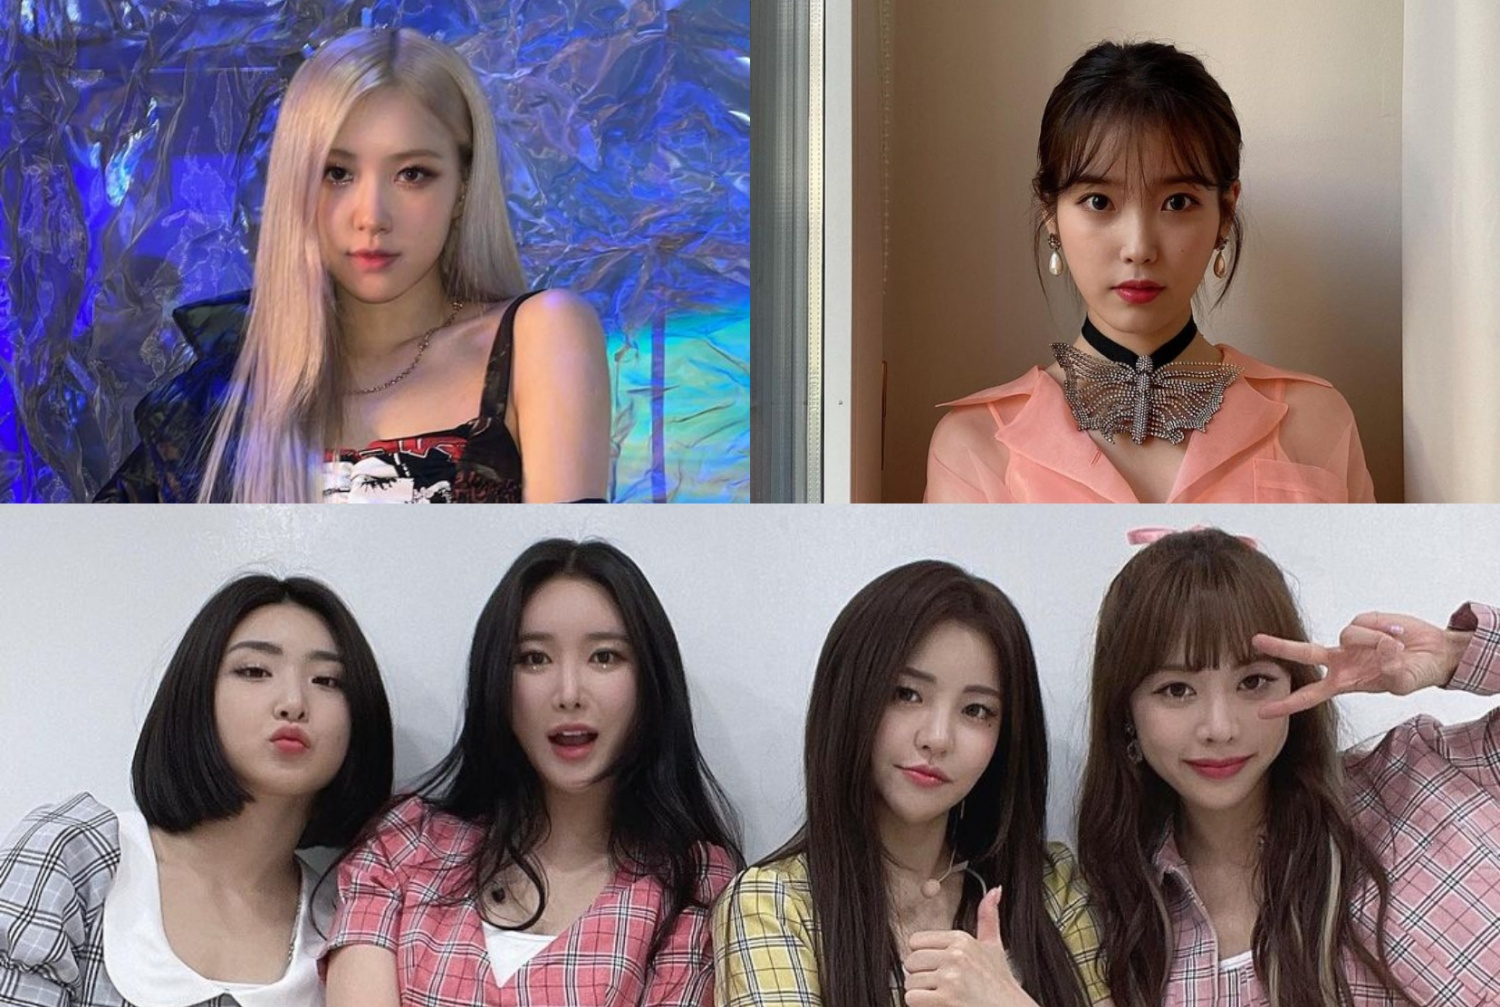 BLACKPINK Rosé, IU, Brave Girls, & More: These are the Most-Streamed K-pop Songs in Korea in April 2021